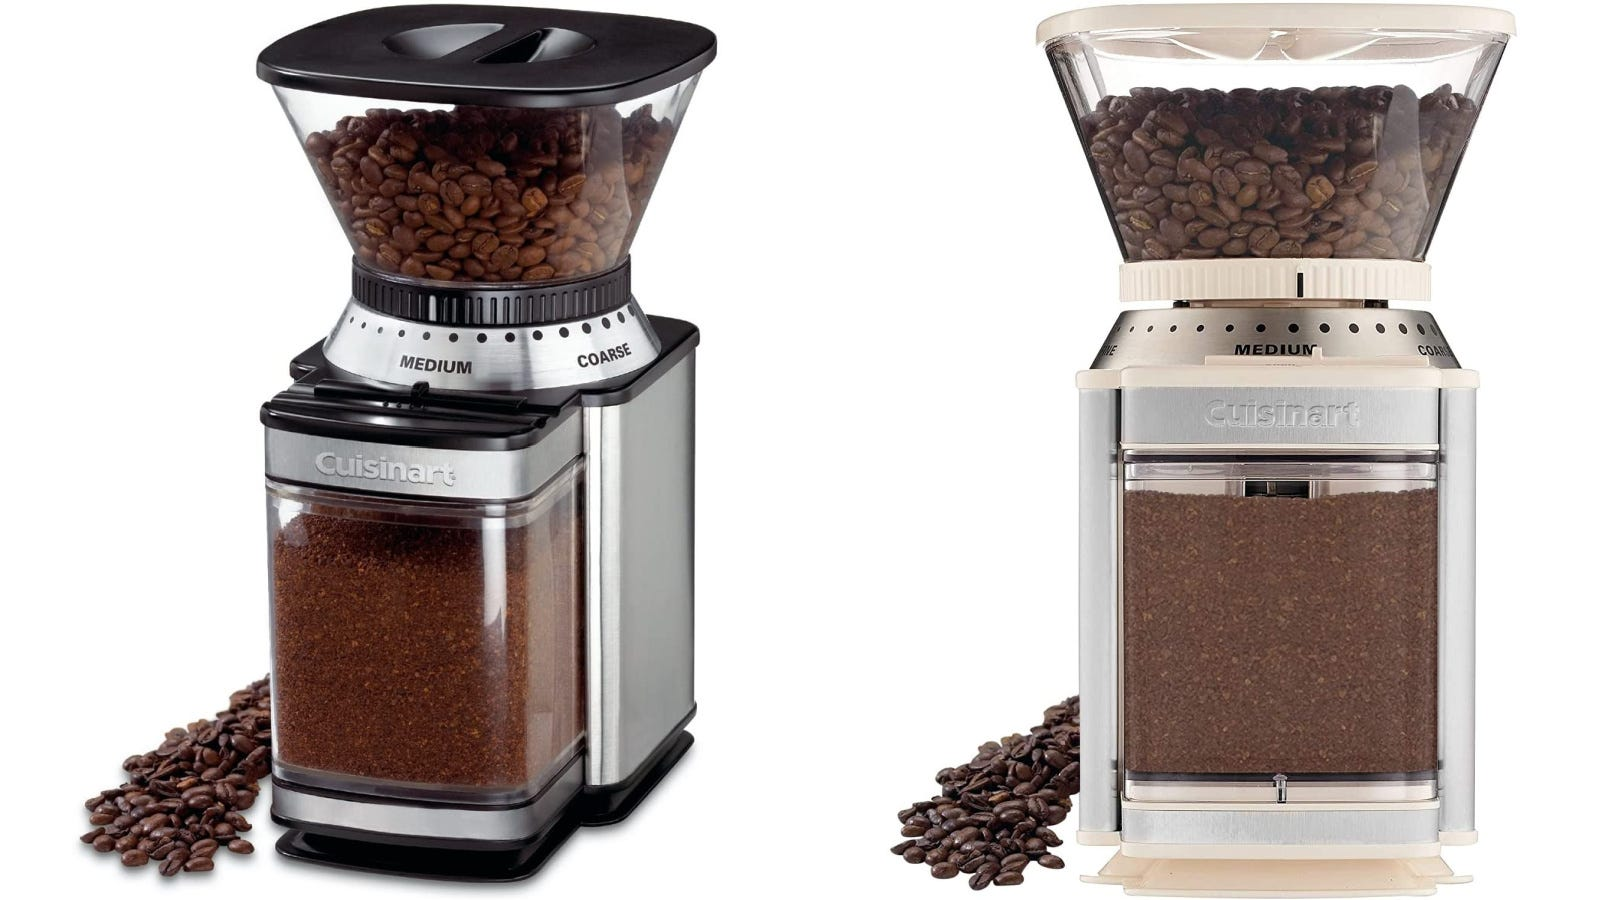 Two images displaying the Cuisinart Supreme Grind Automatic Burr Mill in both black and and creme colors.